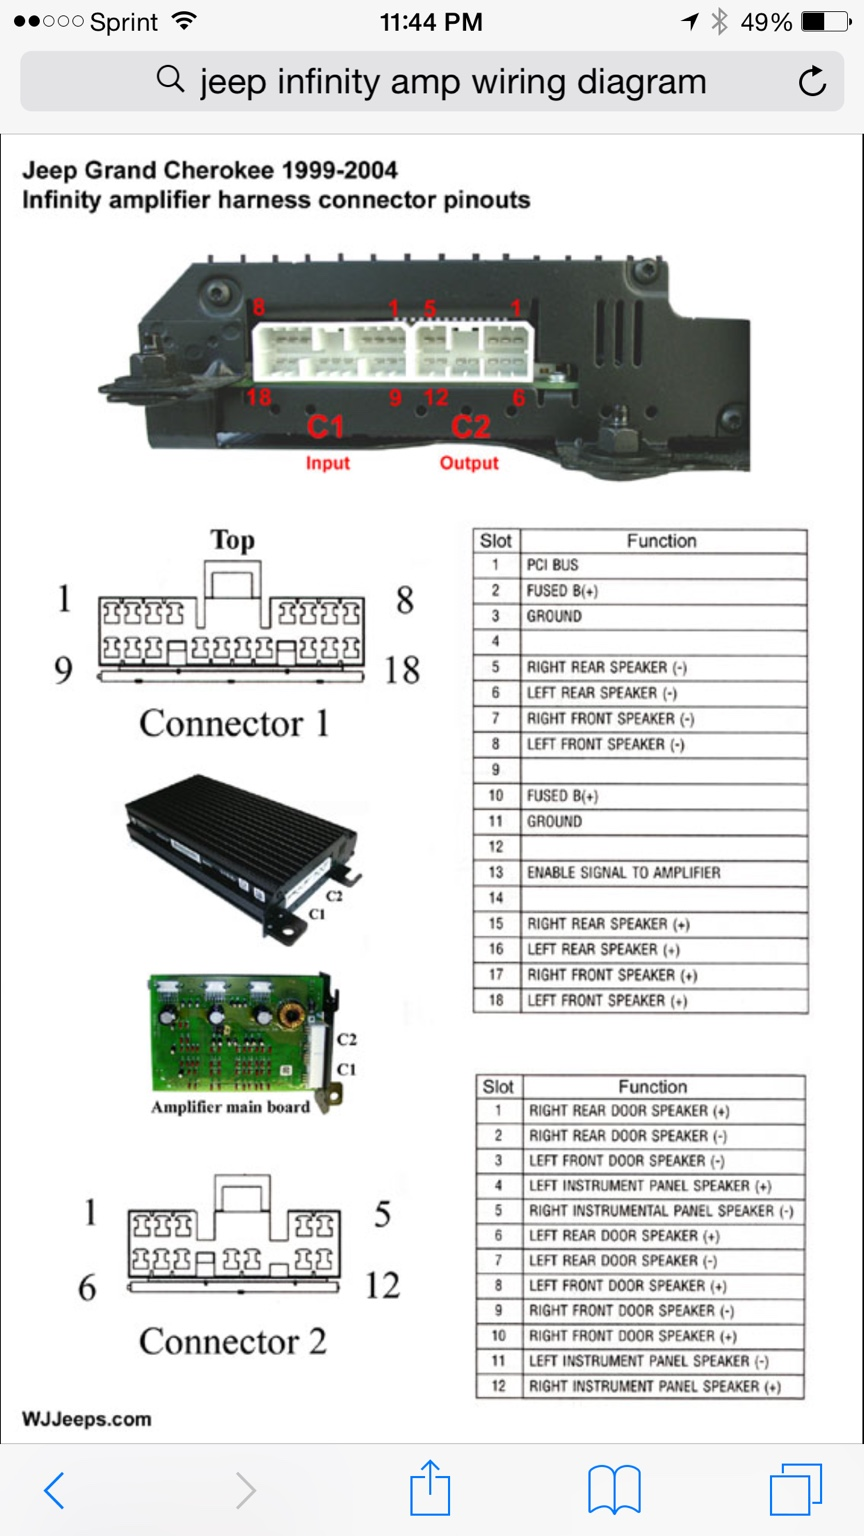 Jeep Amp Wiring Free Diagram For You Infinity 1998 Grand Cherokee Diagrams Scematic Rh 68 Jessicadonath De Factory Wj